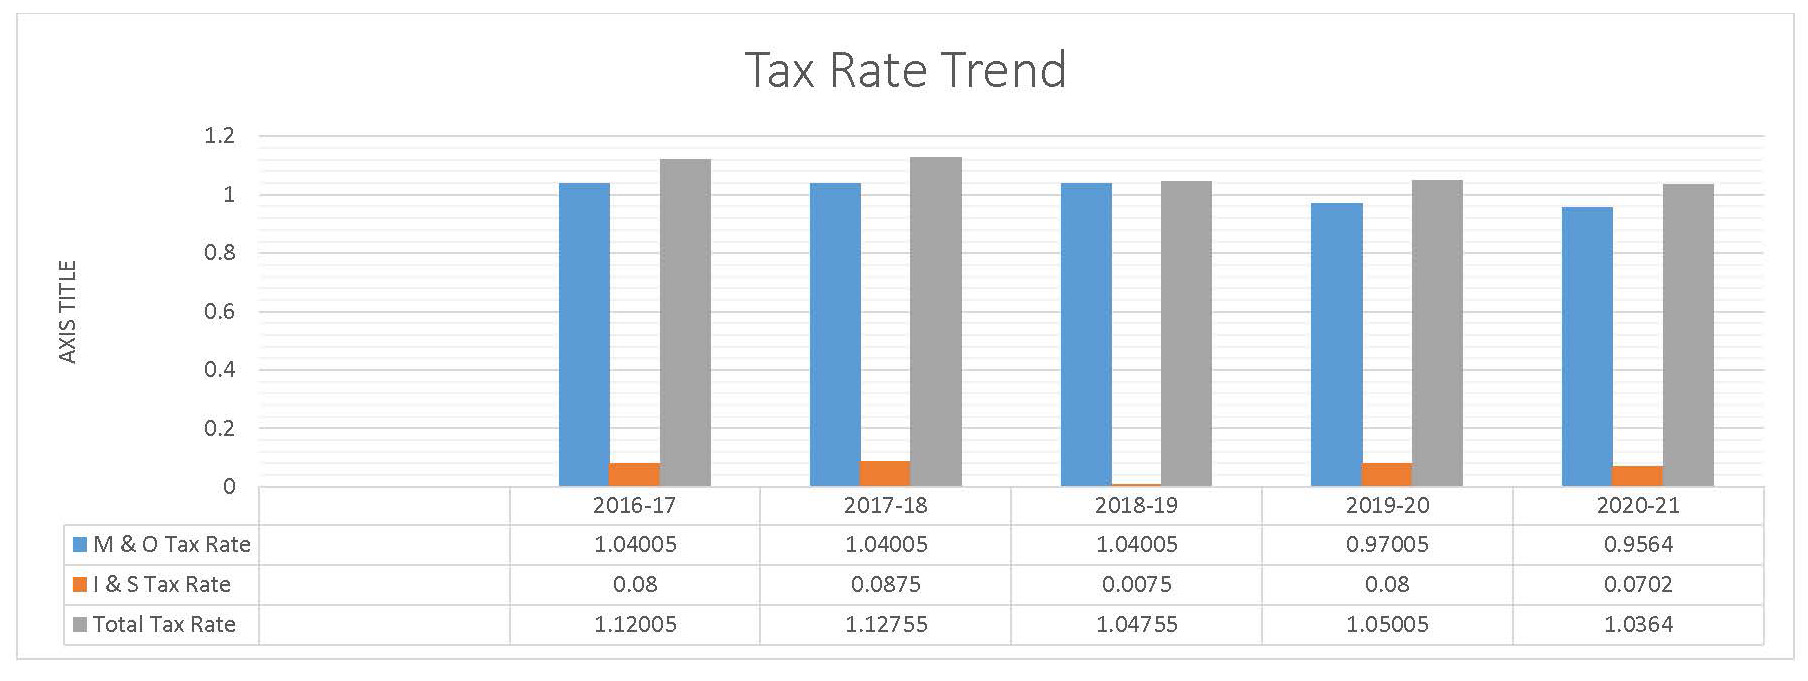 Tax Rate Trend